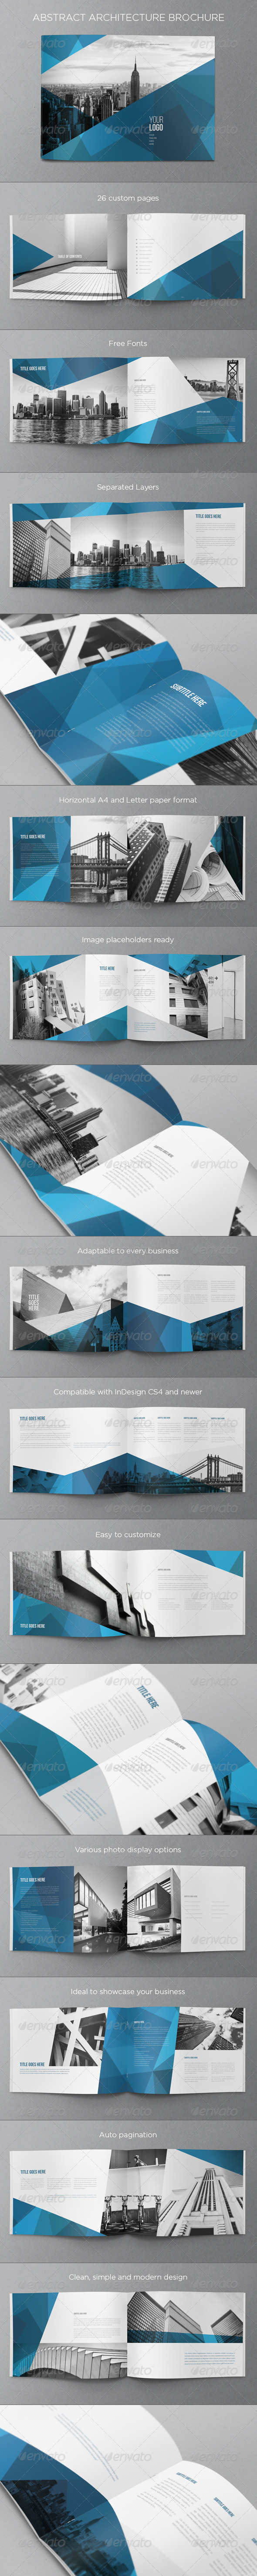 GraphicRiver Abstract Architecture Brochure 7385718